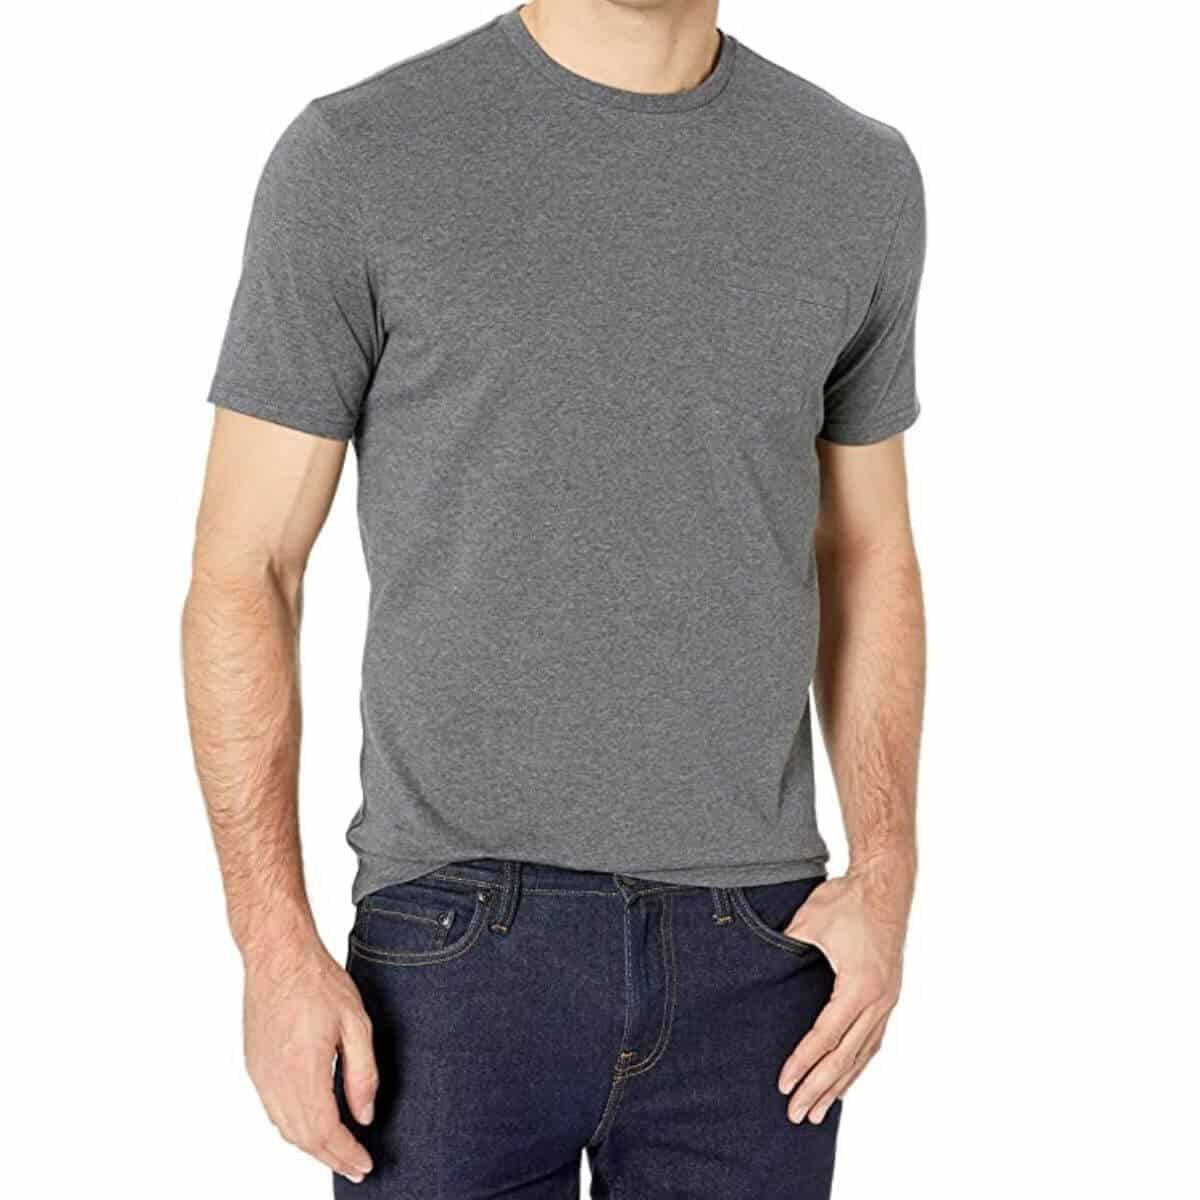 Top half of a person wearing a grey t-shirt and blue jeans.